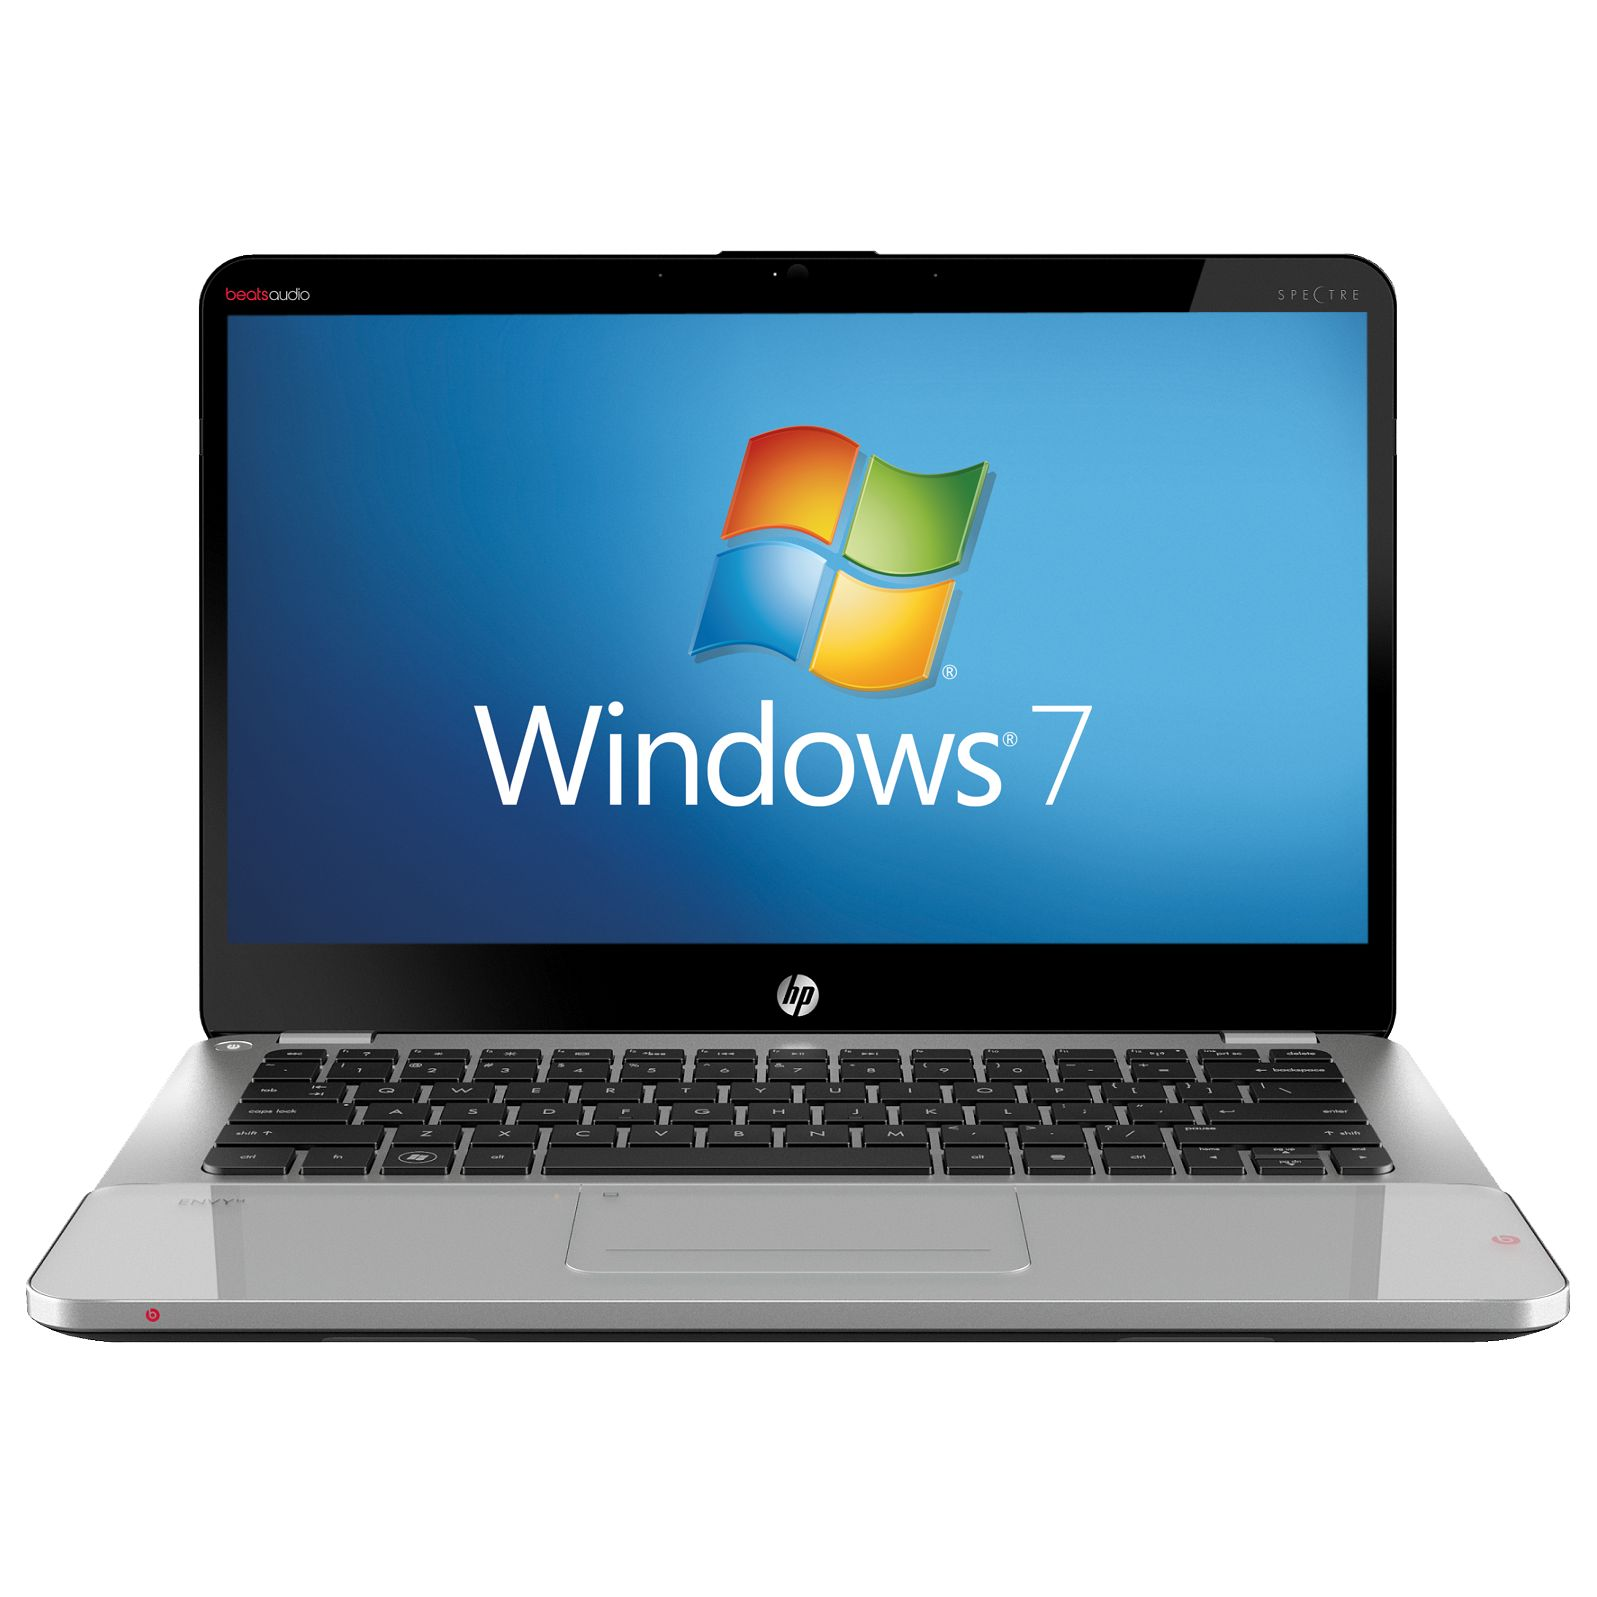 "Hp Envy 14-3000 Spectre Ultrabook, Intel Core I5 1.6ghz, 4gb Ram, 128gb Ssd, 14"" Screen, Beats Audio"